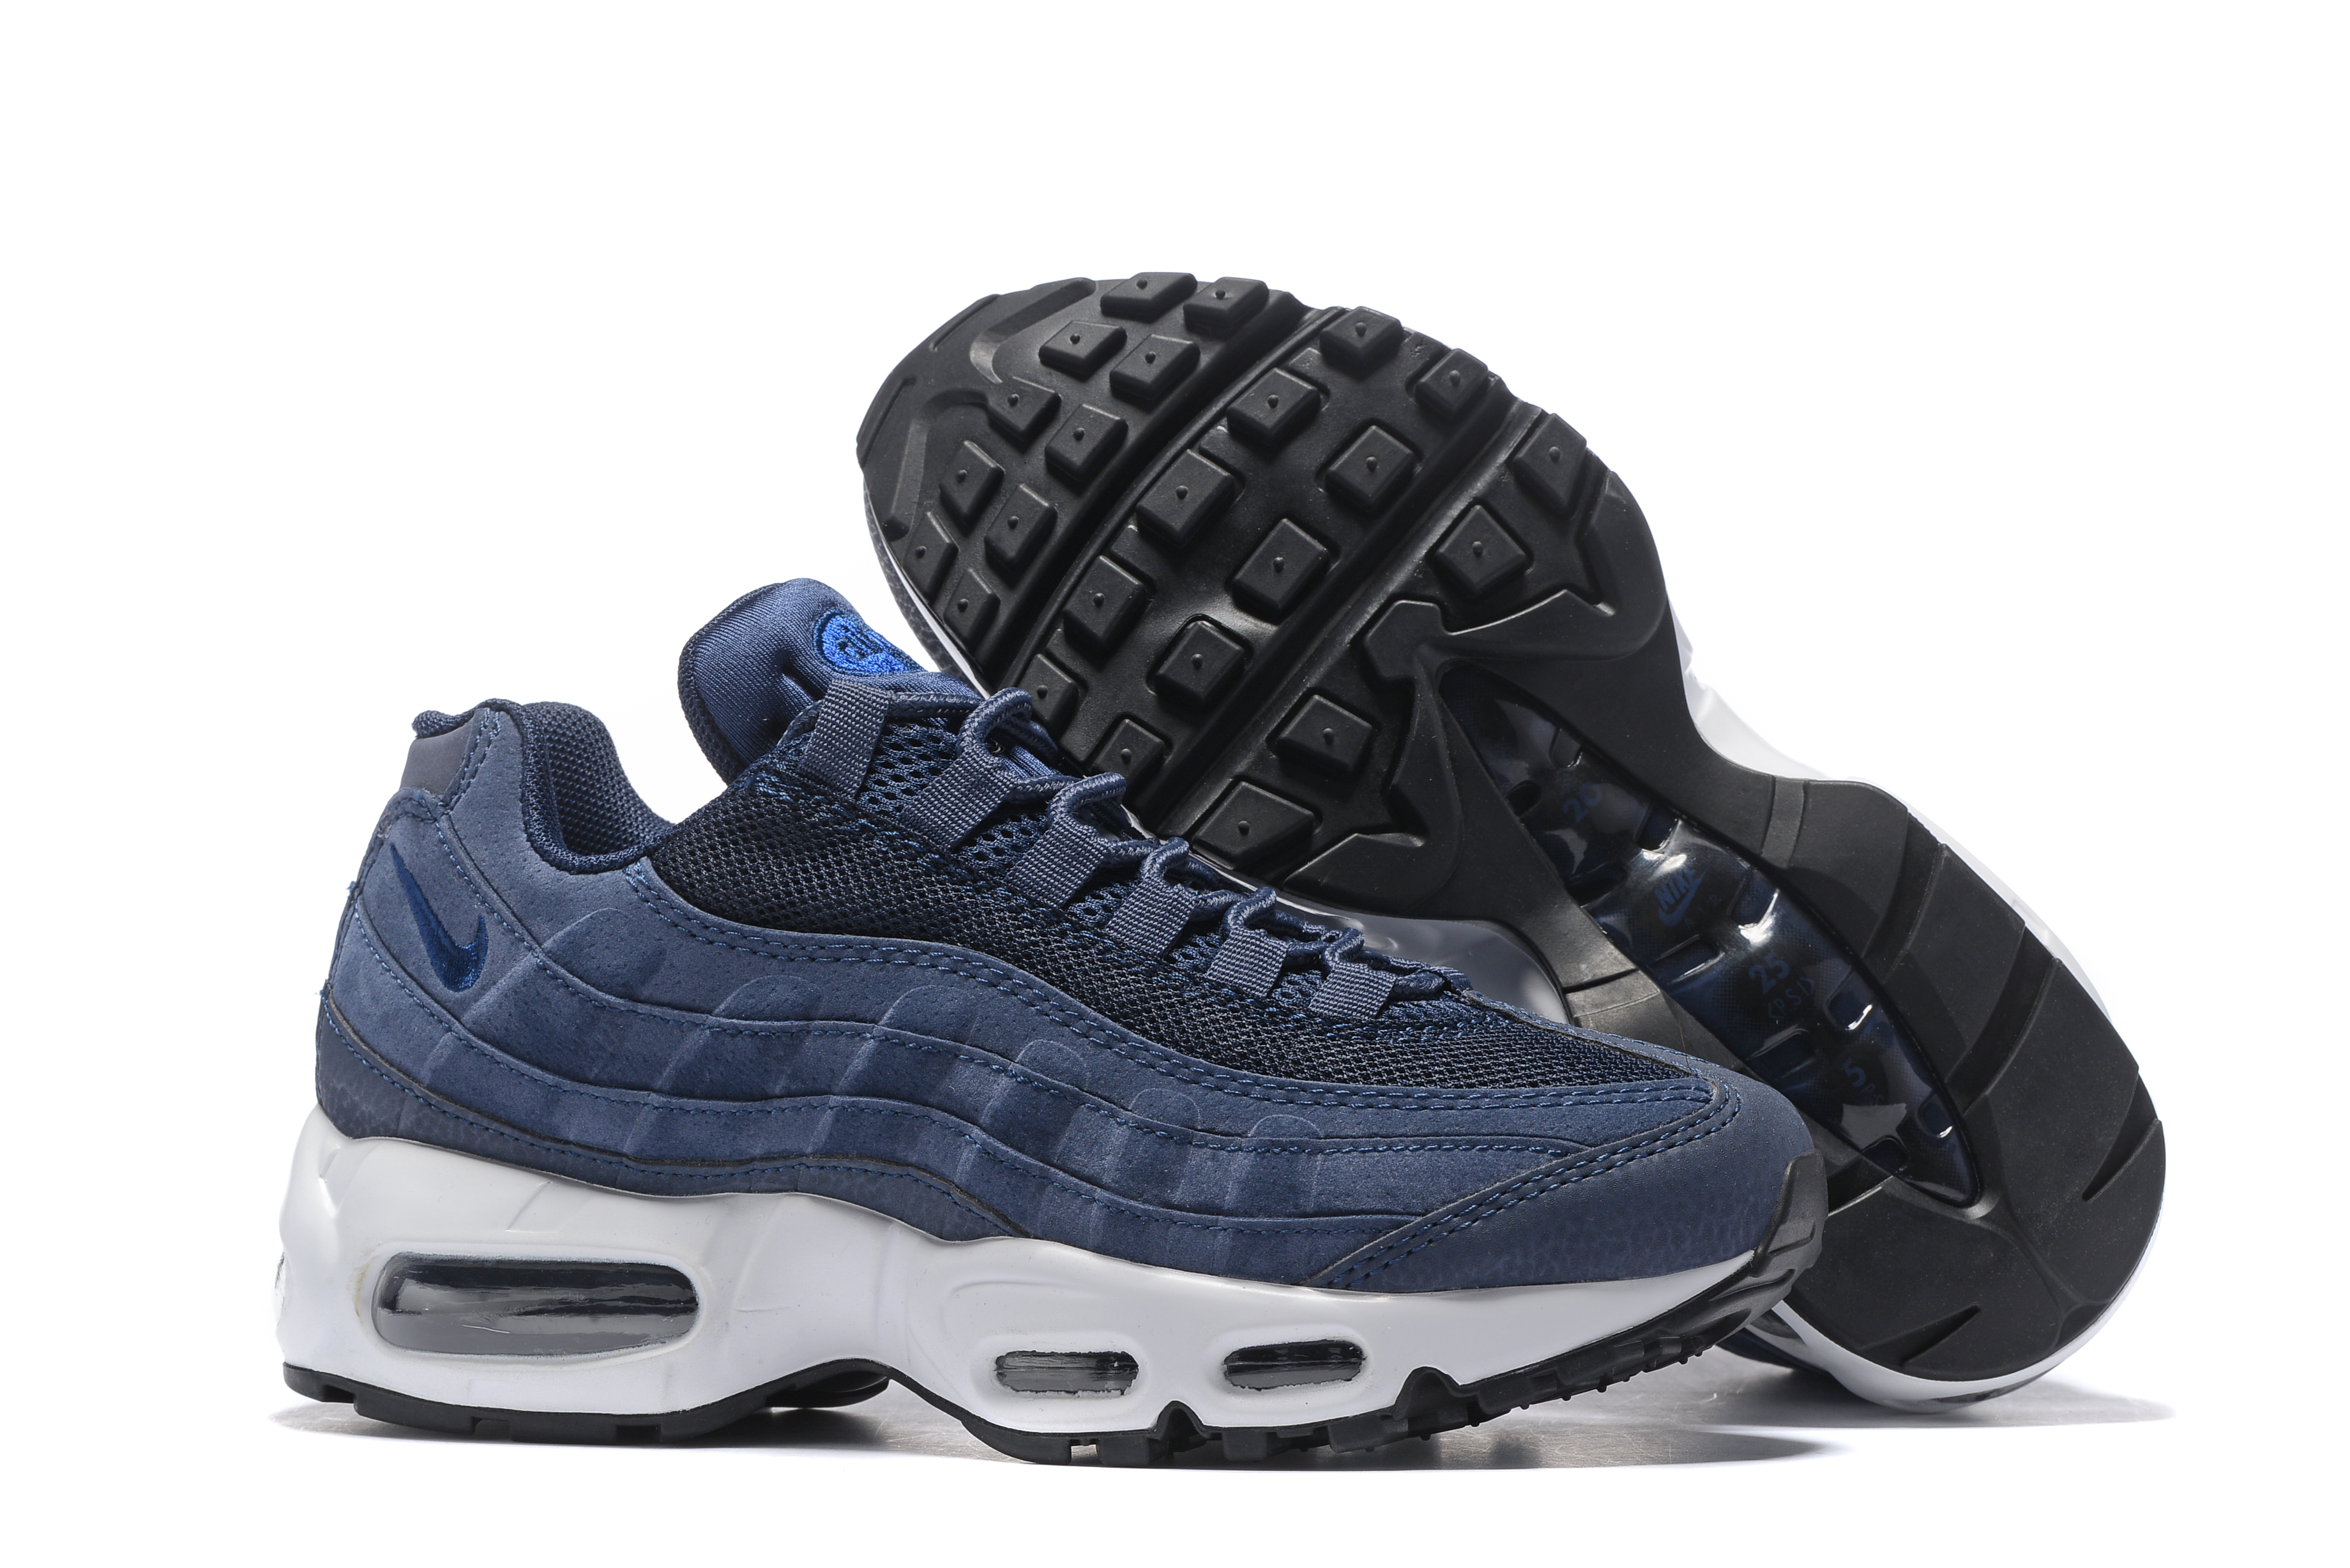 Buy air max 95 size 11 > Up to 59% Discounts